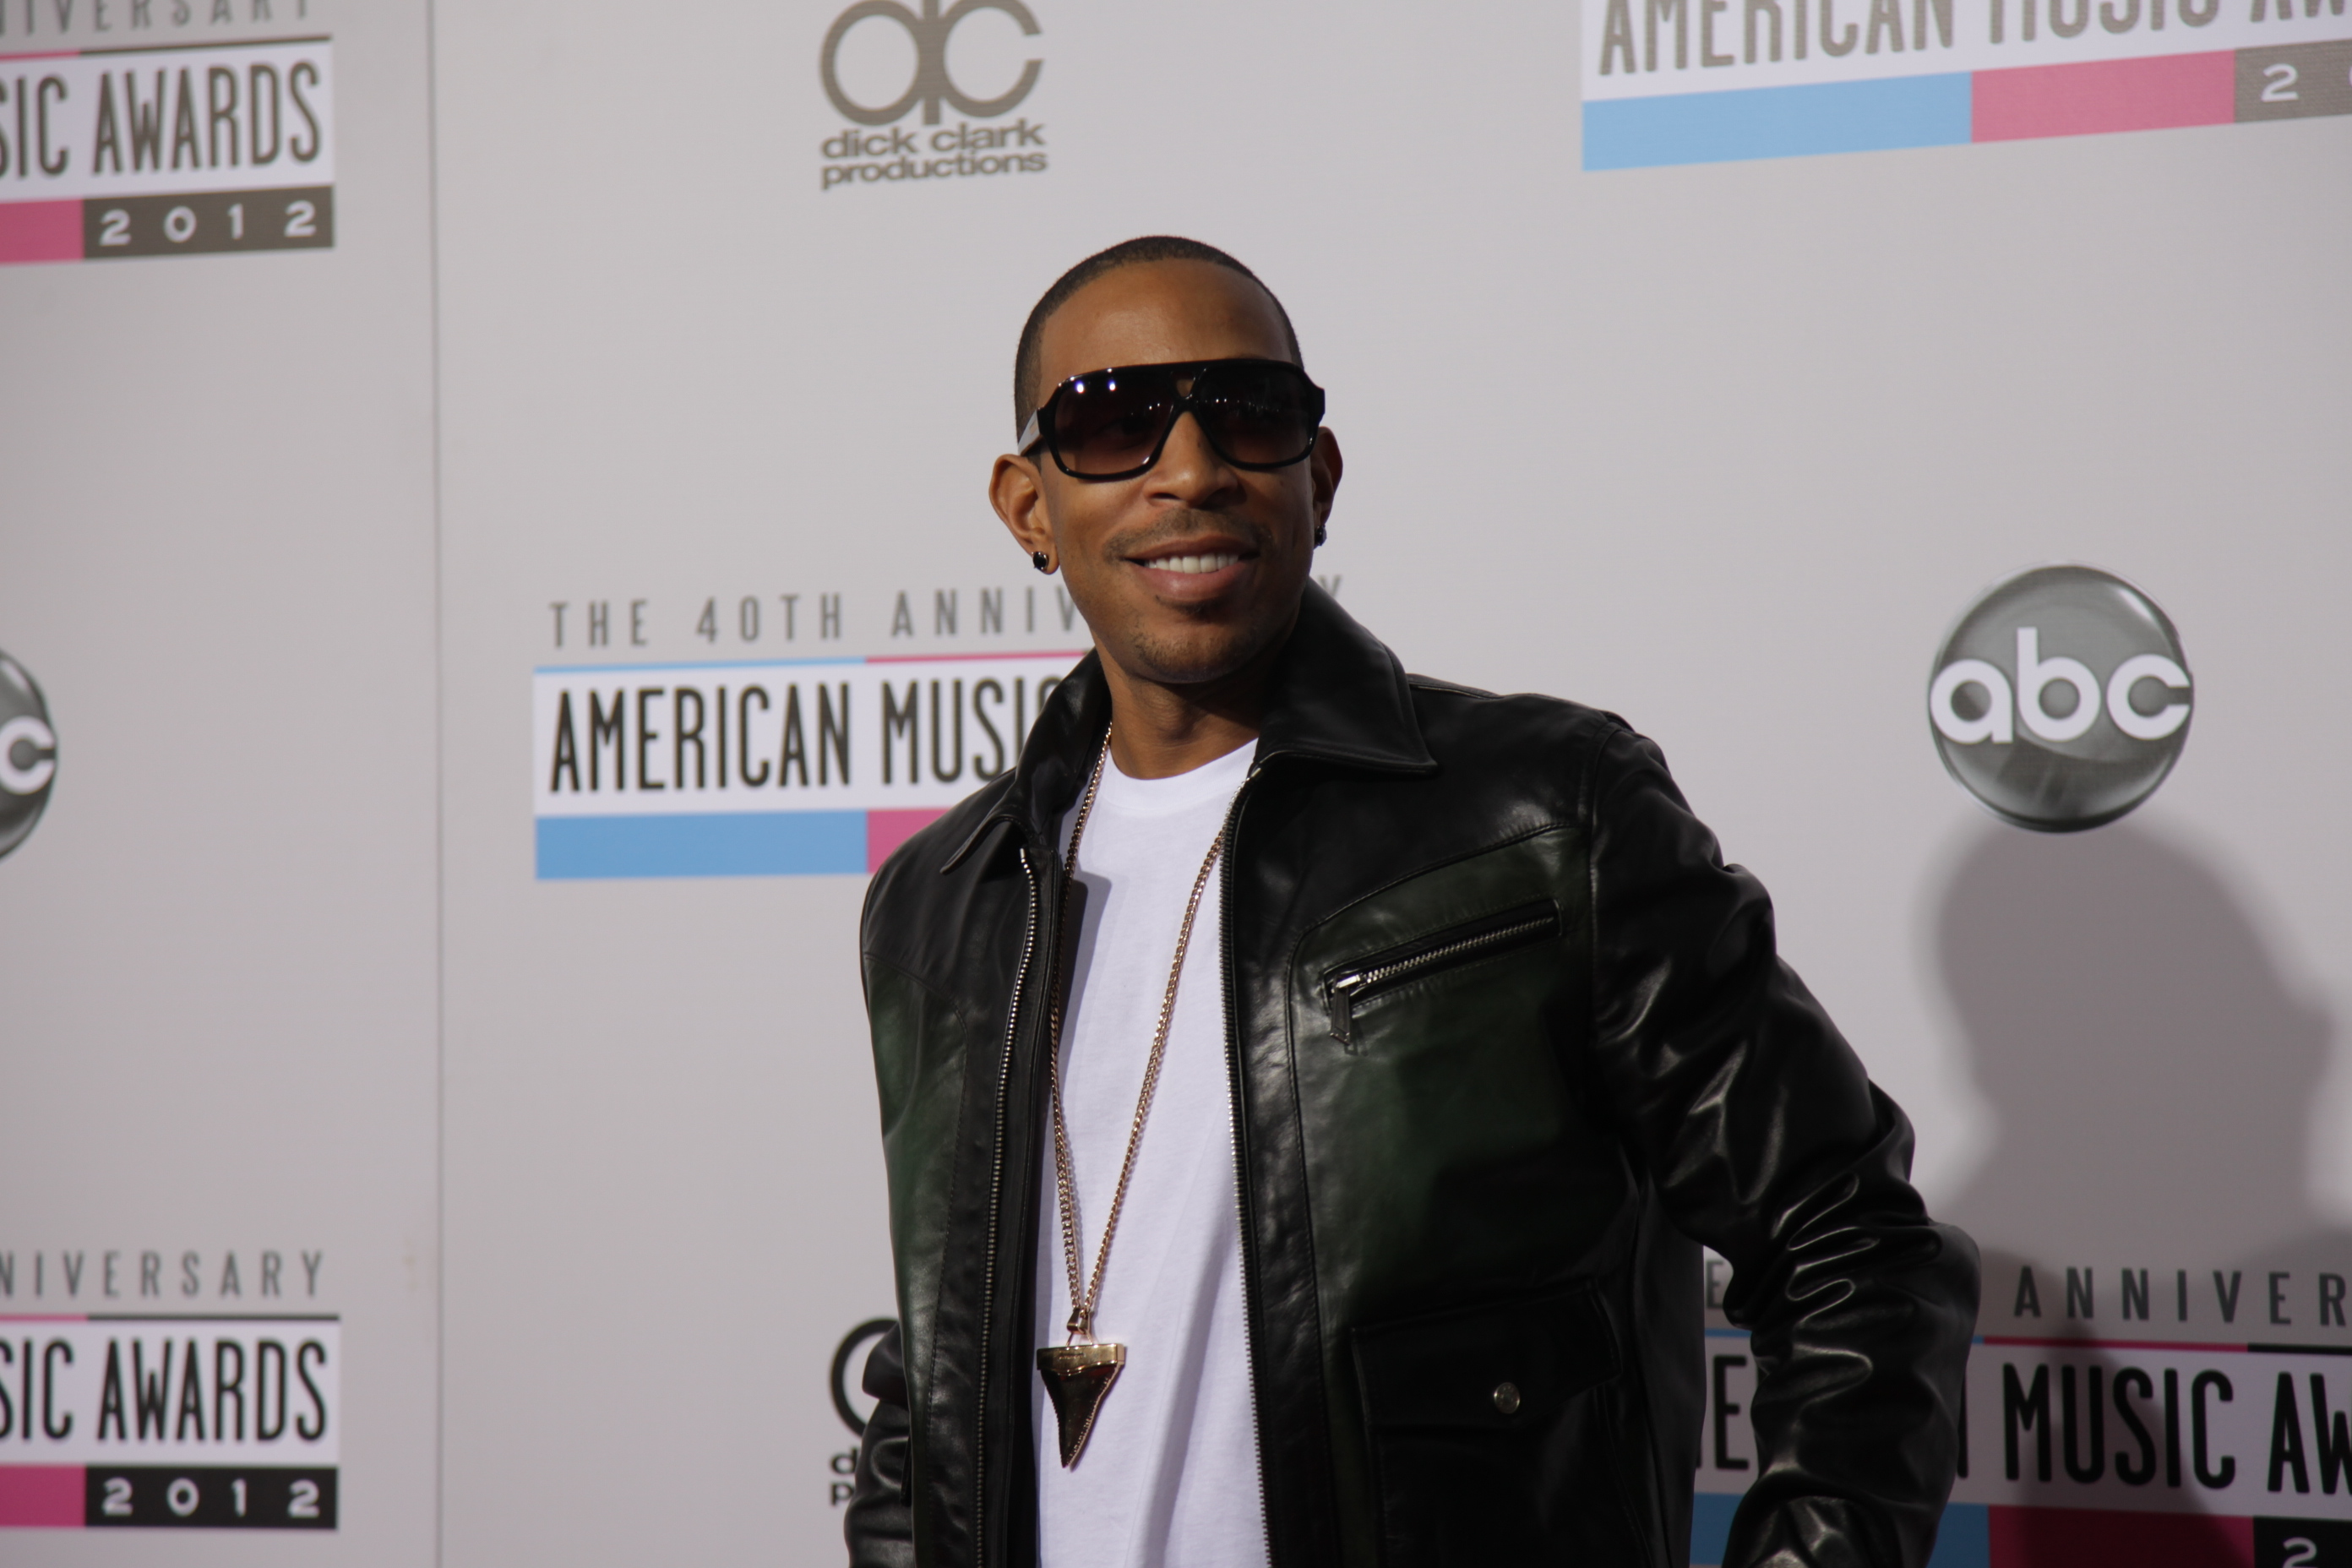 960fd113 c129 469a 8e5d d20a6646bd70 American Music Awards 2012: Red Carpet